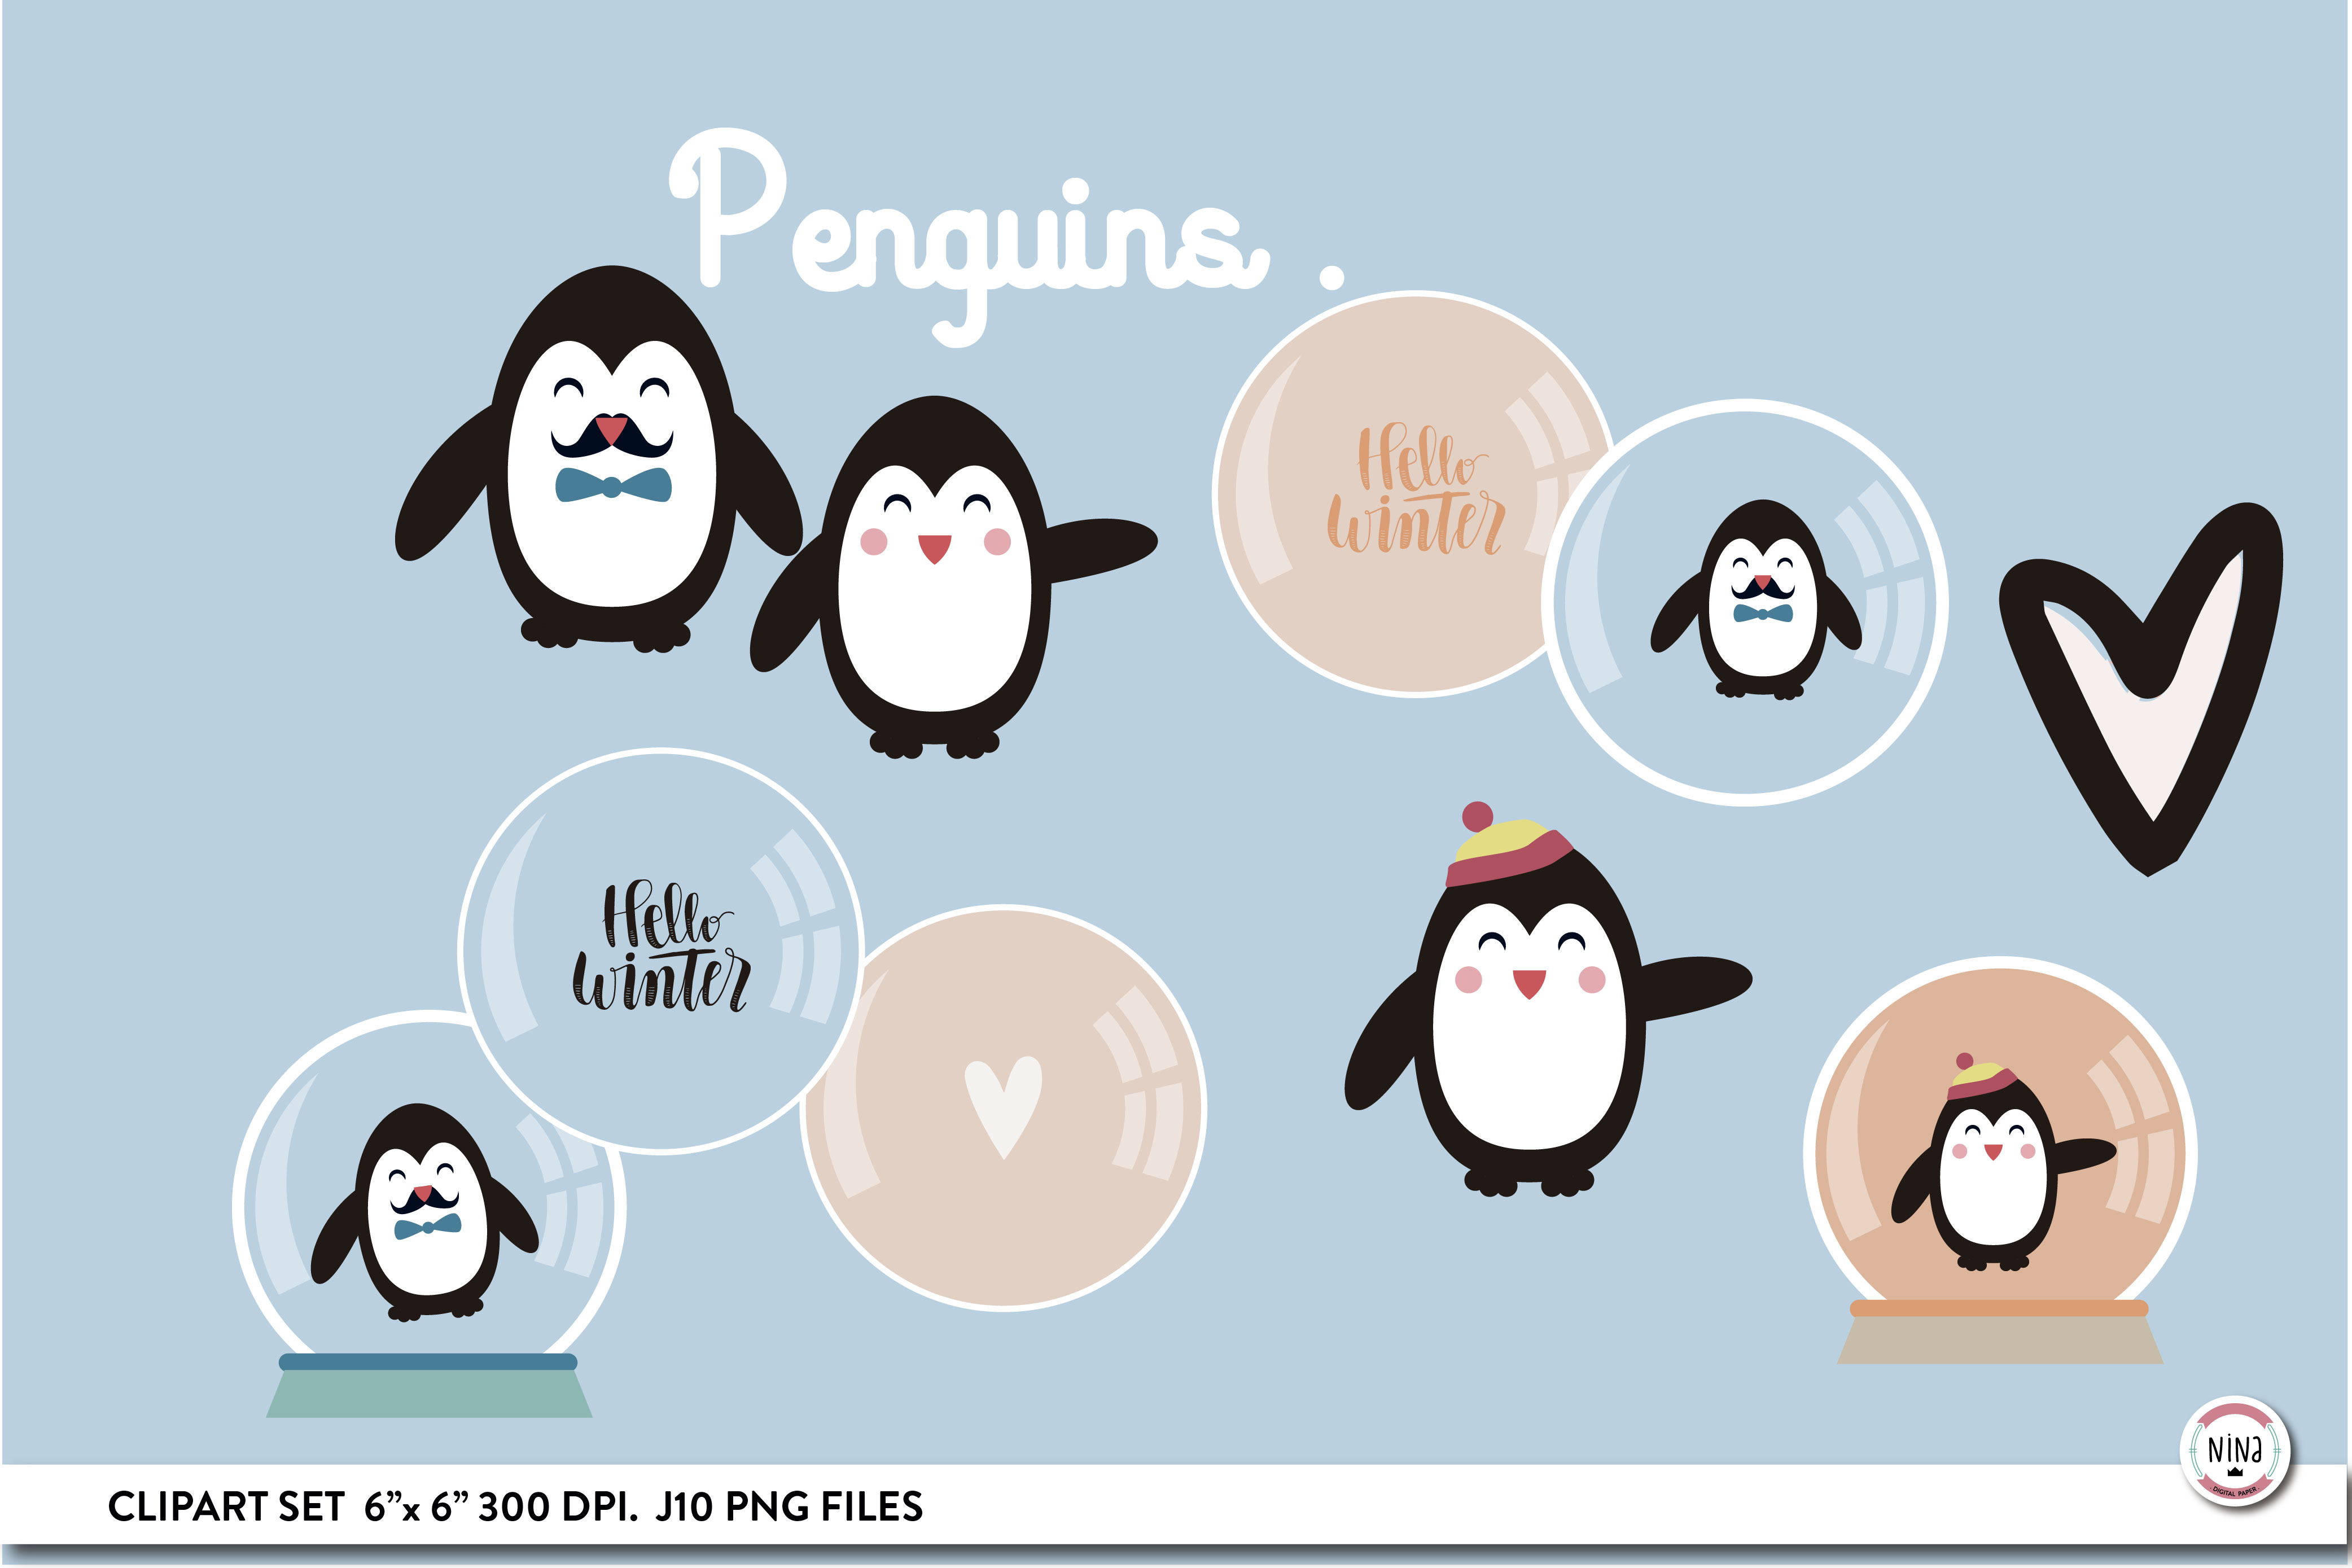 Penguins Clipart Set Snowglobes Graphic By Nina Prints Creative Fabrica